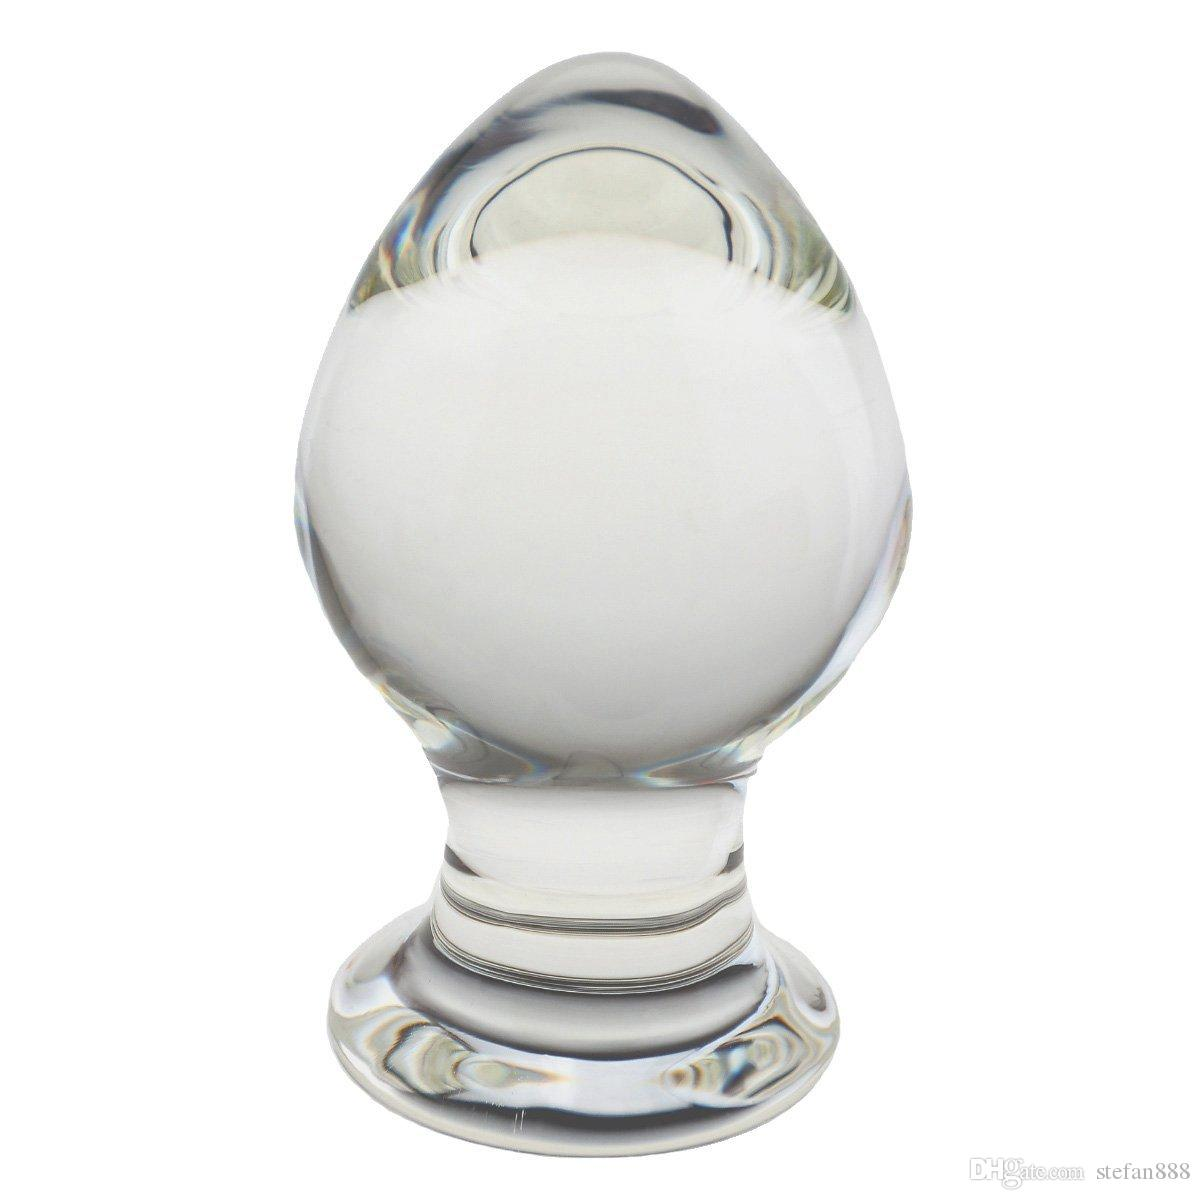 Sex Love Games Personal Massager for Women Men Couples Lover Glass Crystal Ball Adult Products Mushroom Shaped Anal Butt Plug Stimulate, 12.